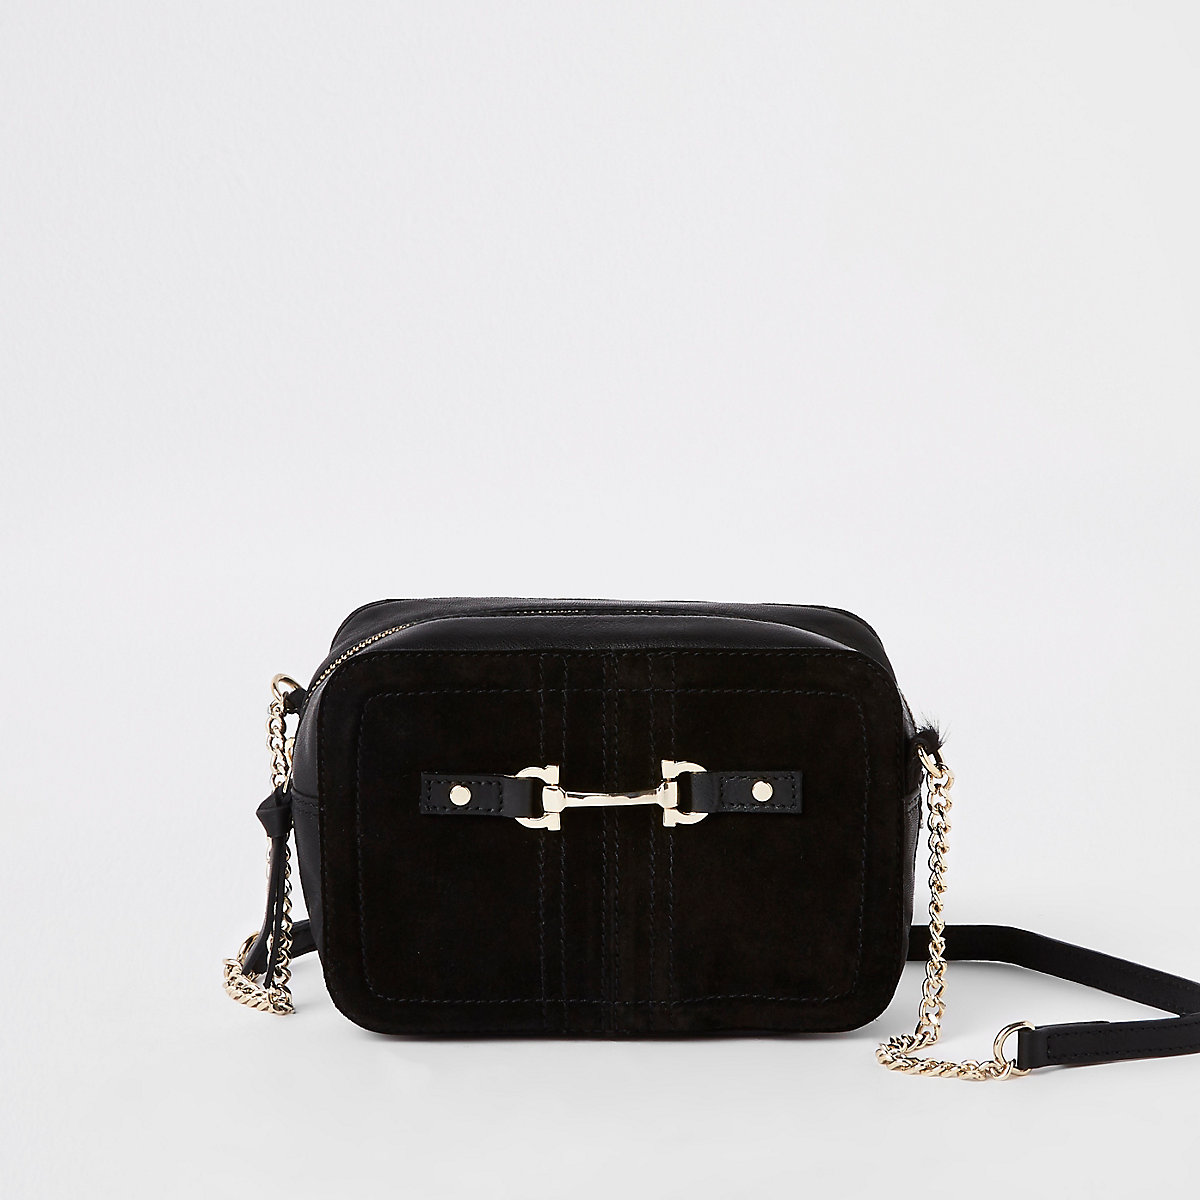 Black suede leather mini cross body bag